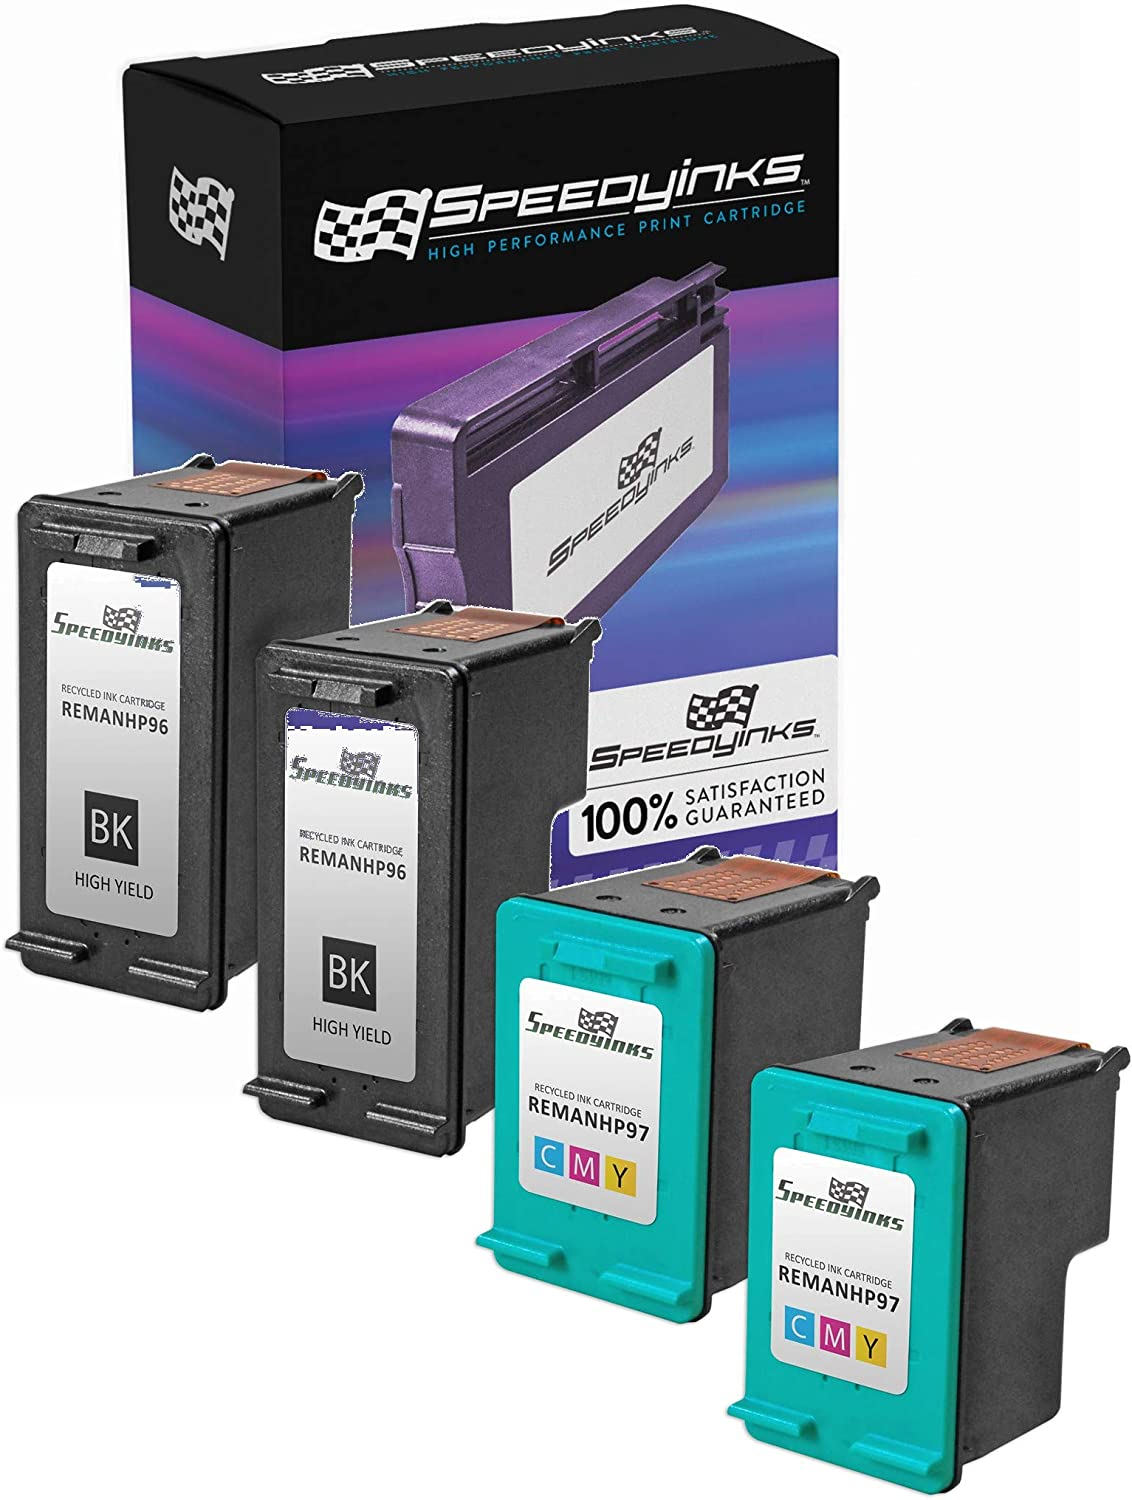 Speedy Inks Remanufactured Ink Cartridge Replacement for HP 96 and HP 97 (2 Black, 2 Color, 4-Pack)